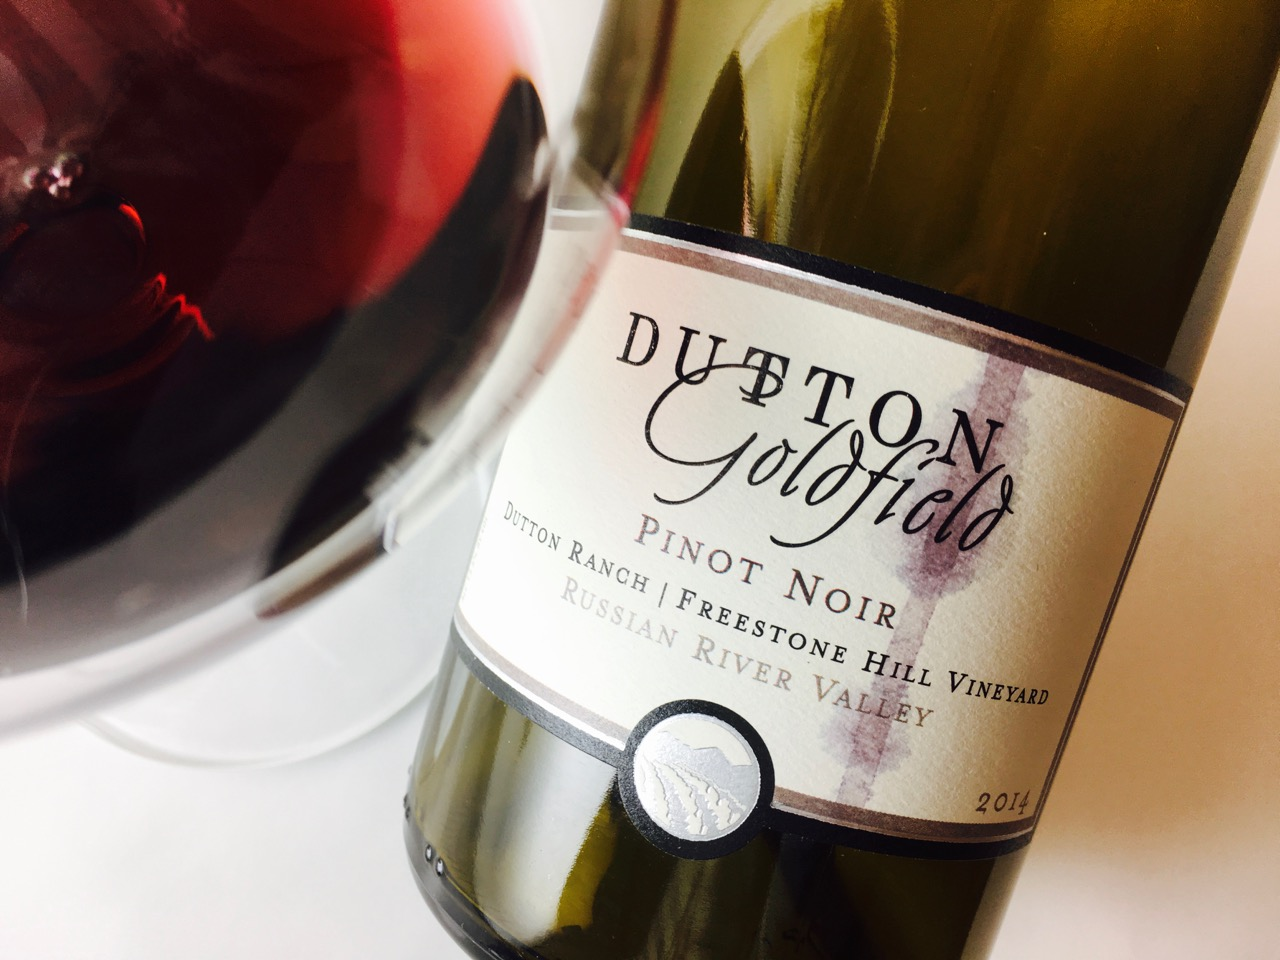 2014 Dutton-Goldfield Pinot Noir Freestone Hill Vineyard Russian River Valley